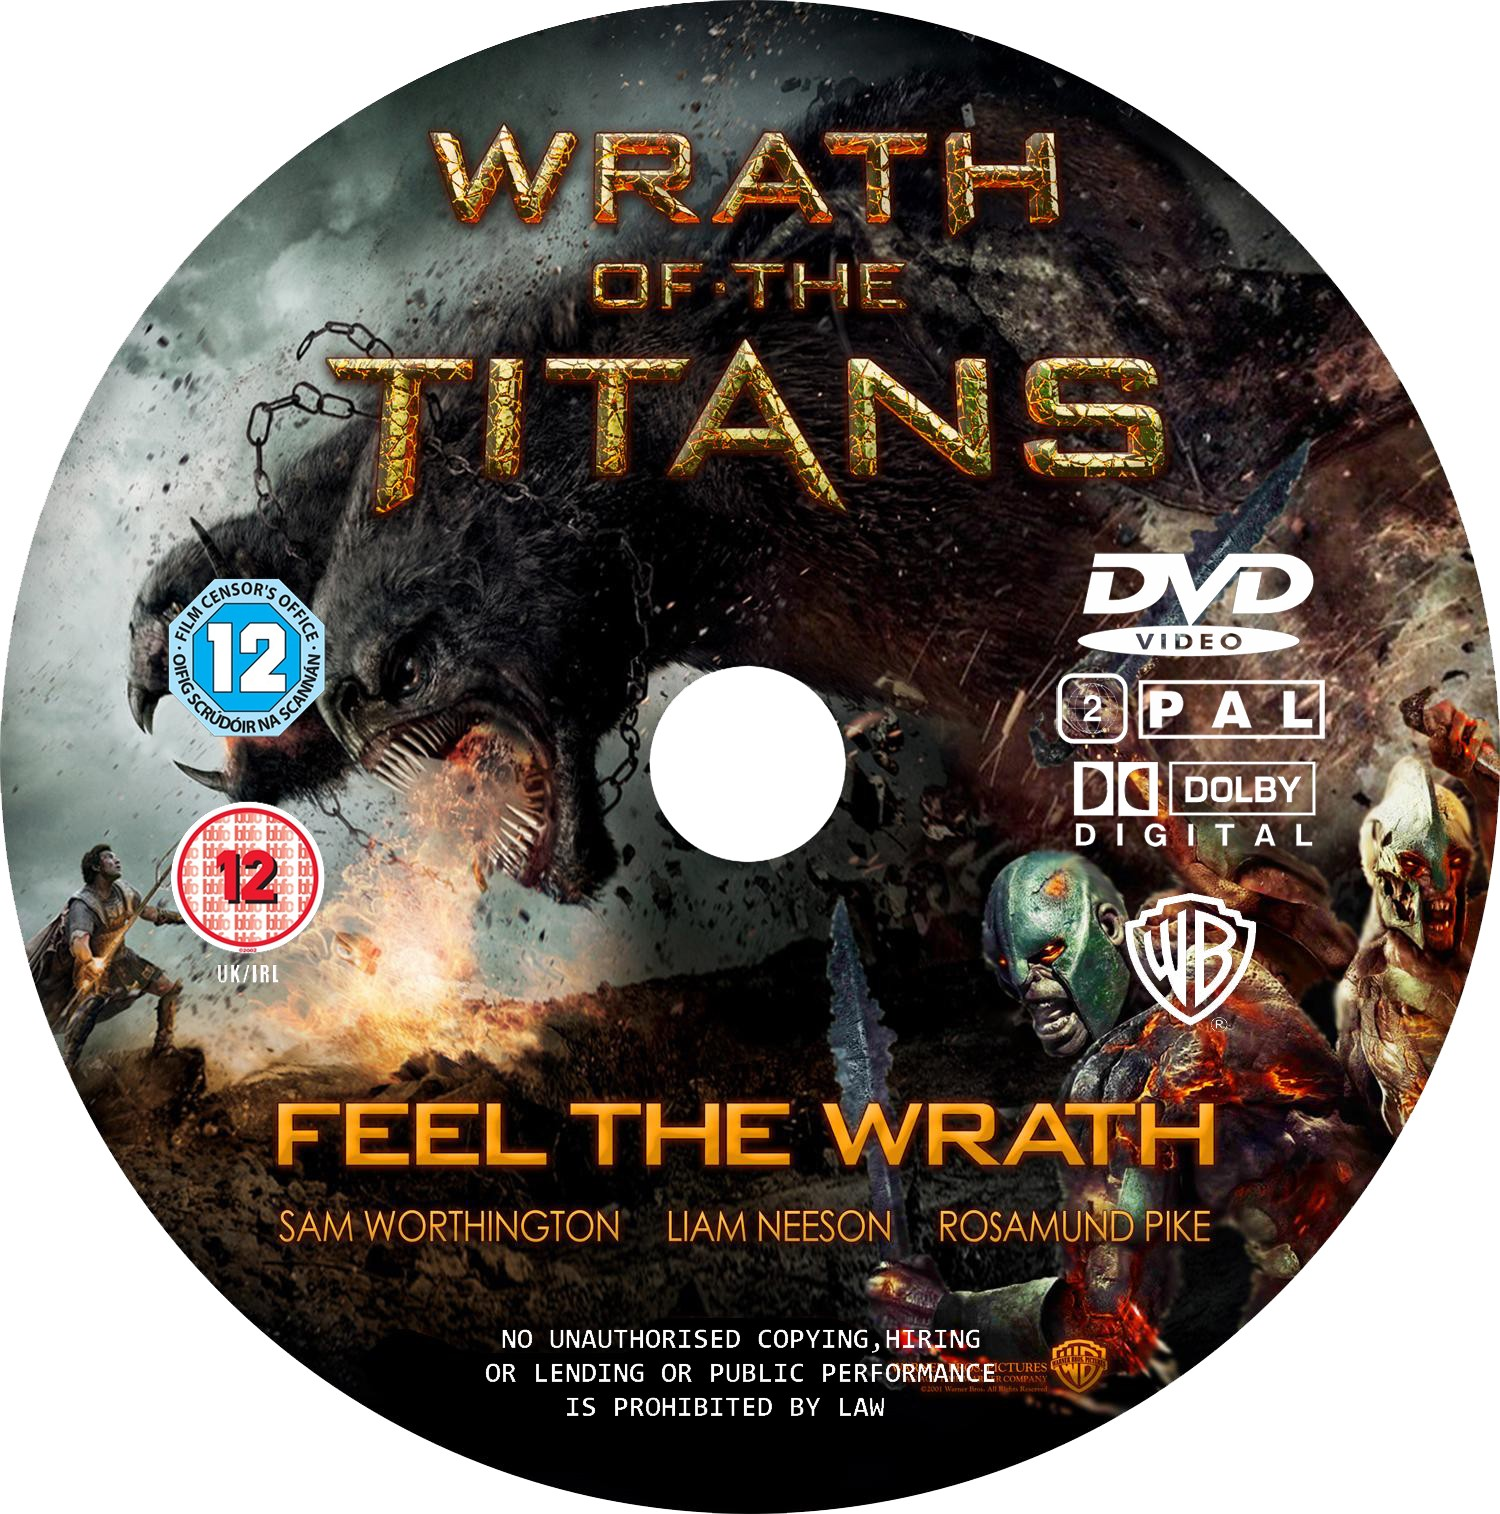 http://2.bp.blogspot.com/-SyuKrUkzBwY/UDSzHl_mrrI/AAAAAAAAALg/B3-aShwkO9c/s1600/wrath_of_the_titans_2012_r2_custom-cd-www.getcovers.net_.jpg